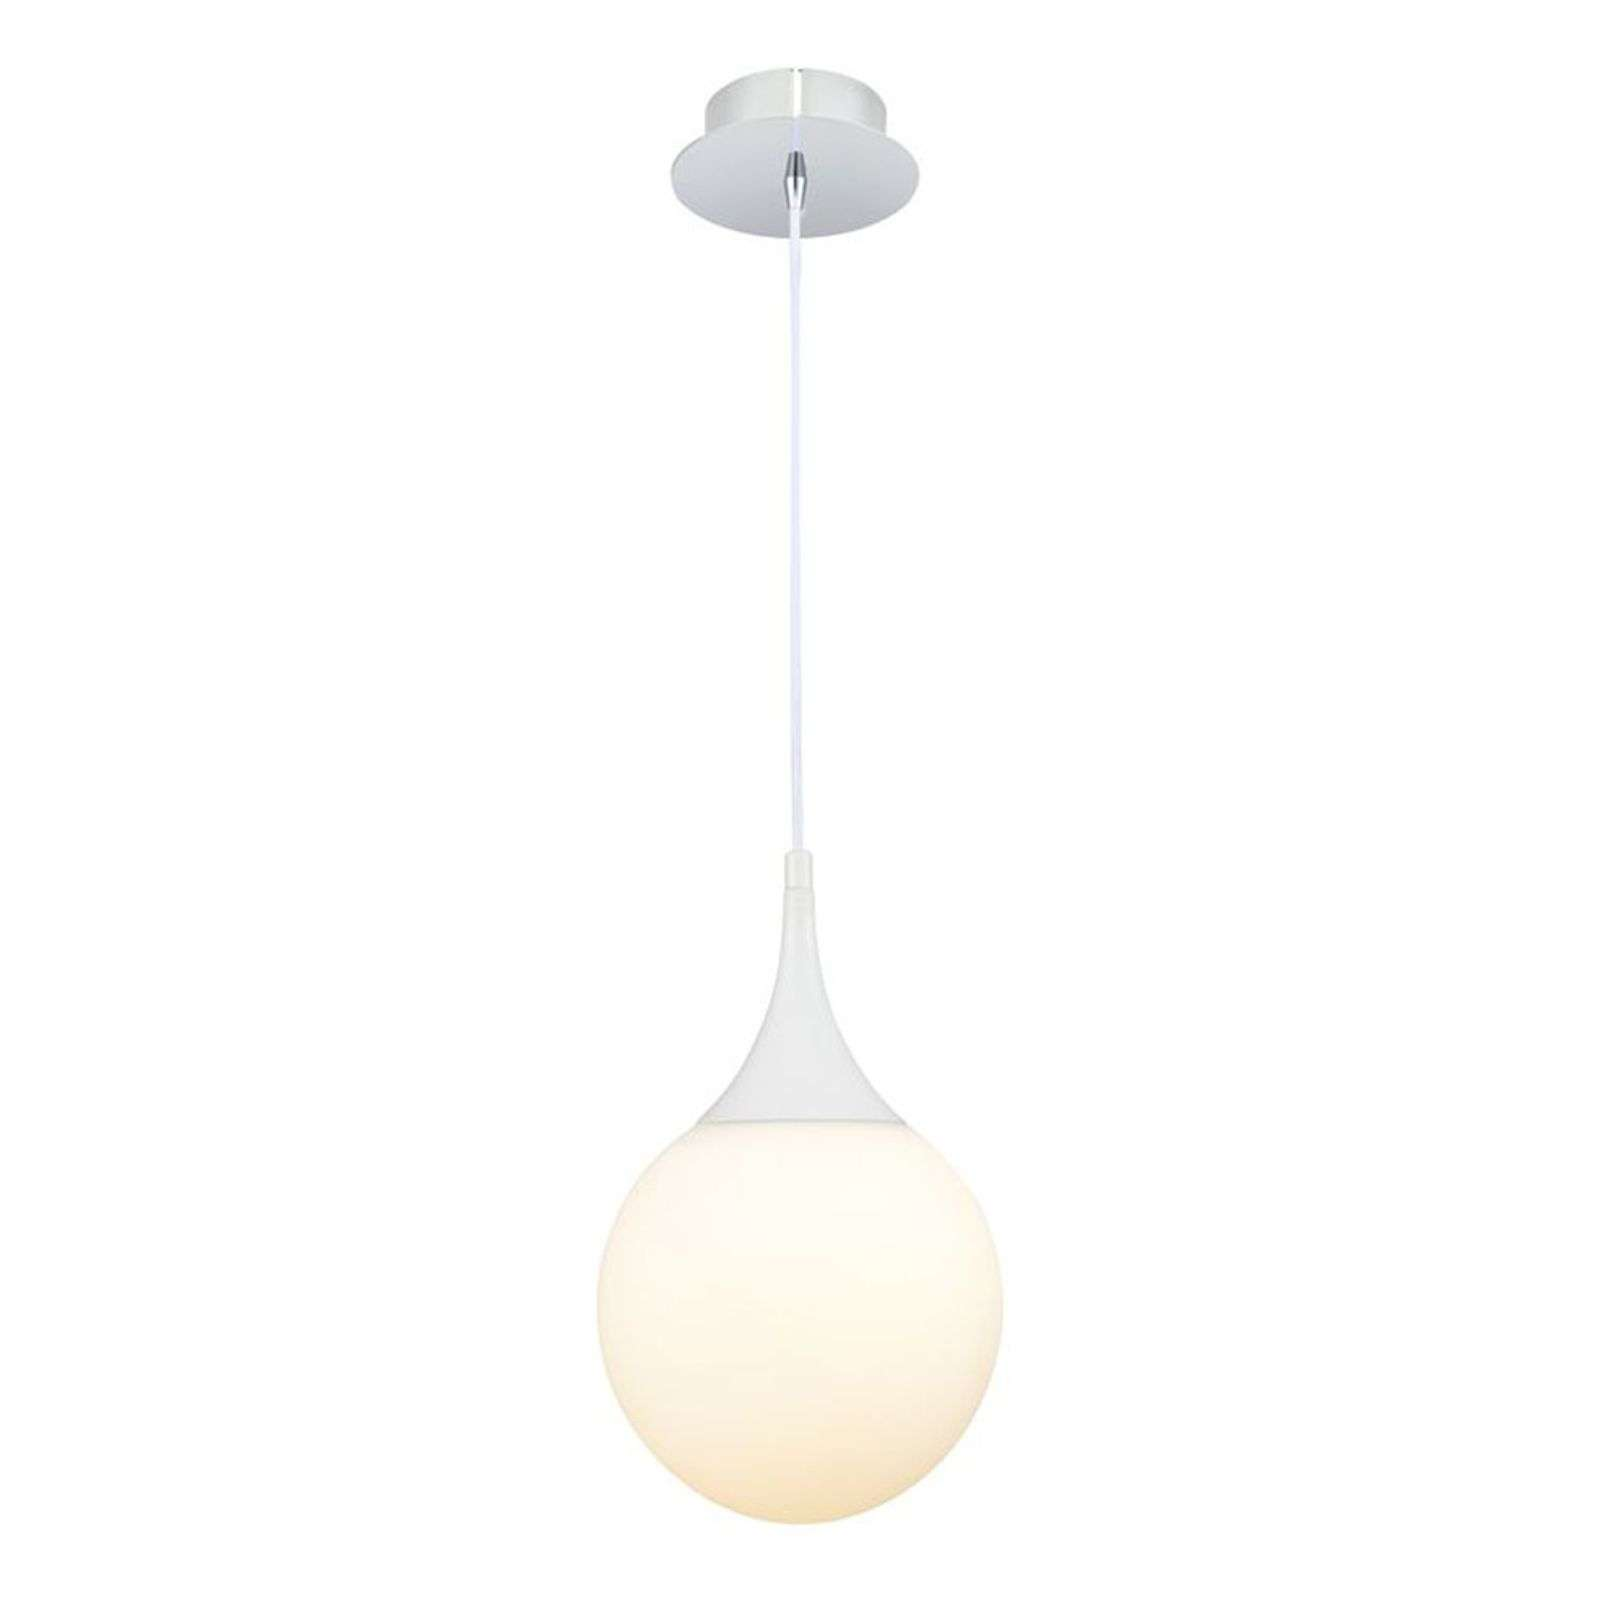 Suspension blanche Dewdrop, 20cm